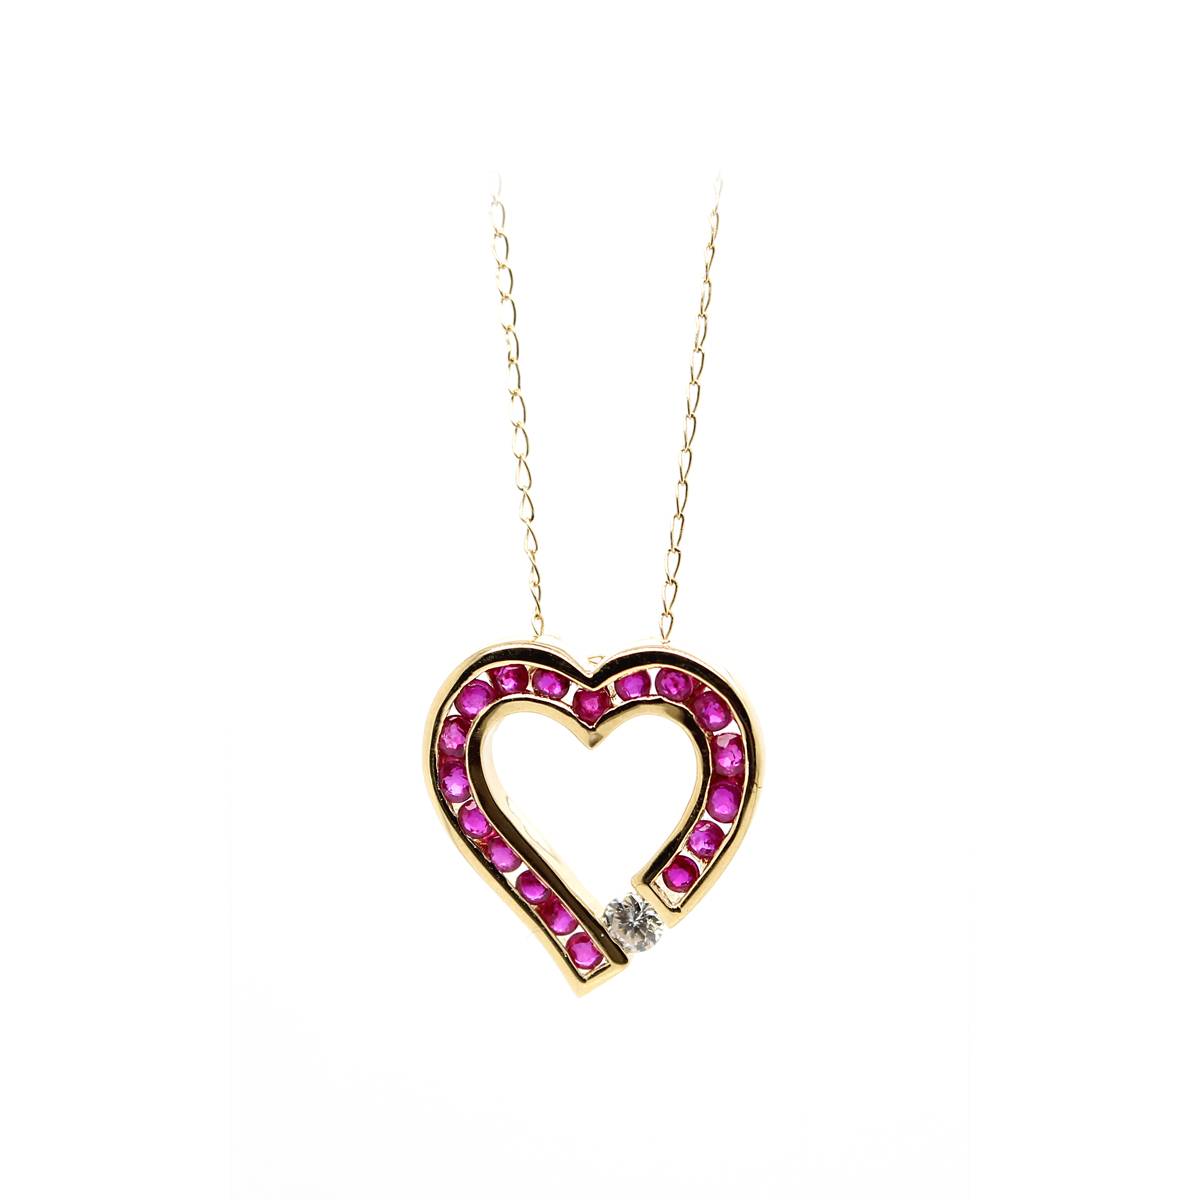 Vintage 14 Karat Yellow Gold Ruby and Diamond Heart Pendant Necklace